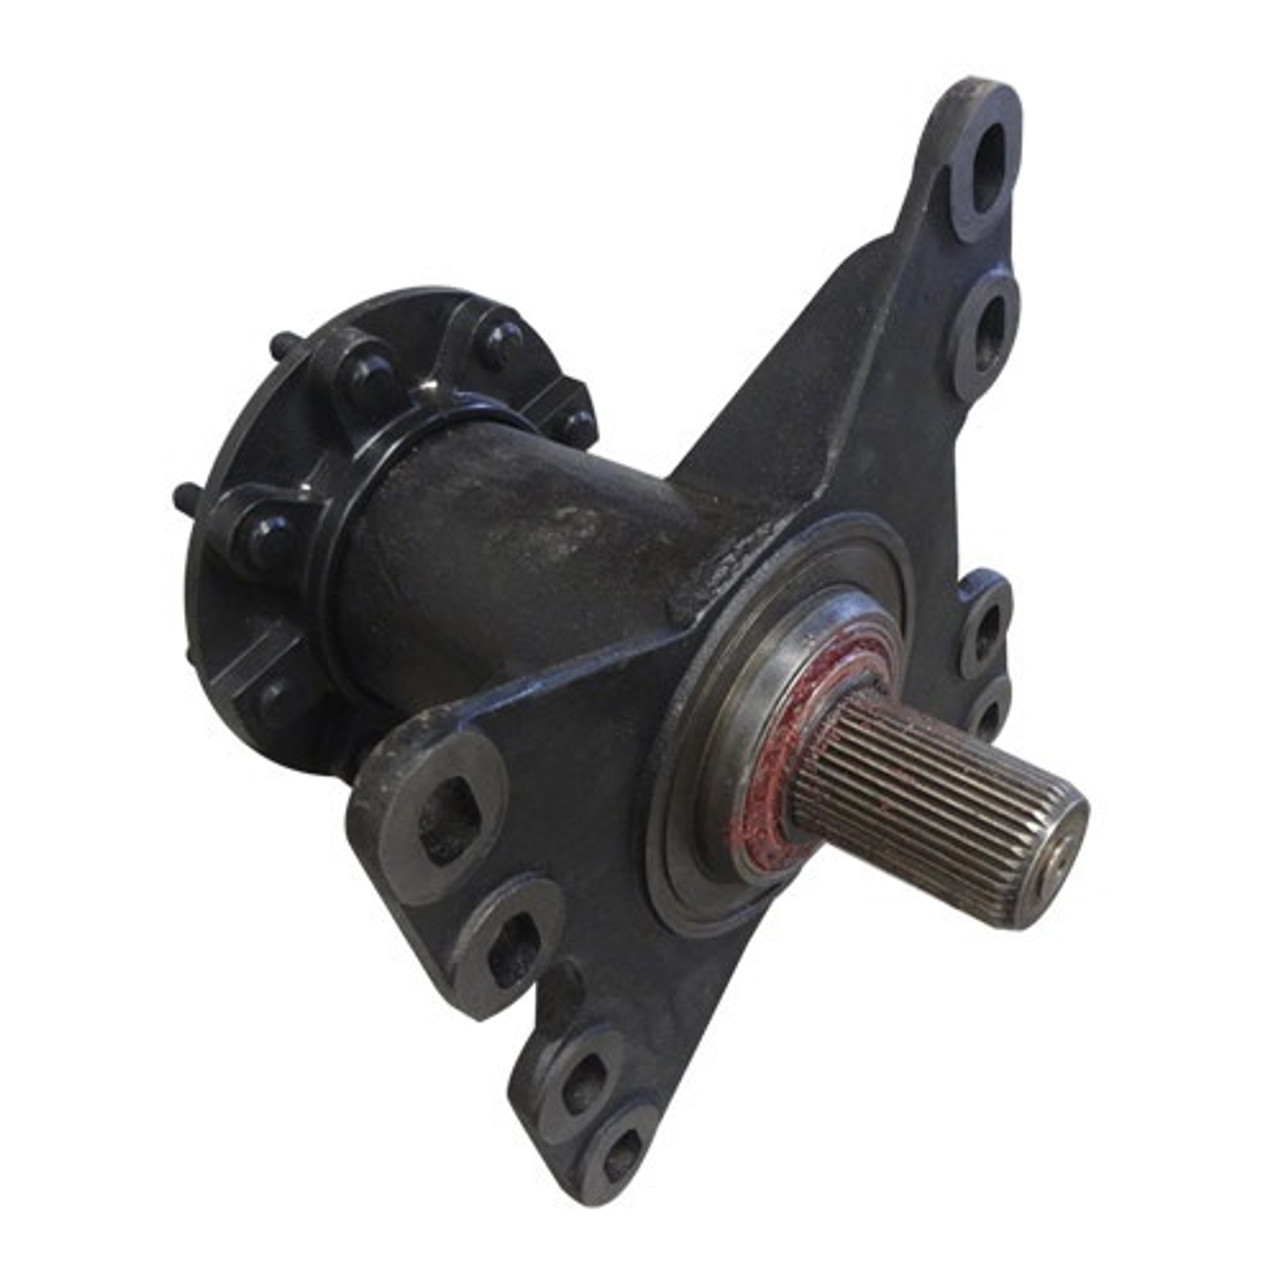 Axle and Housing